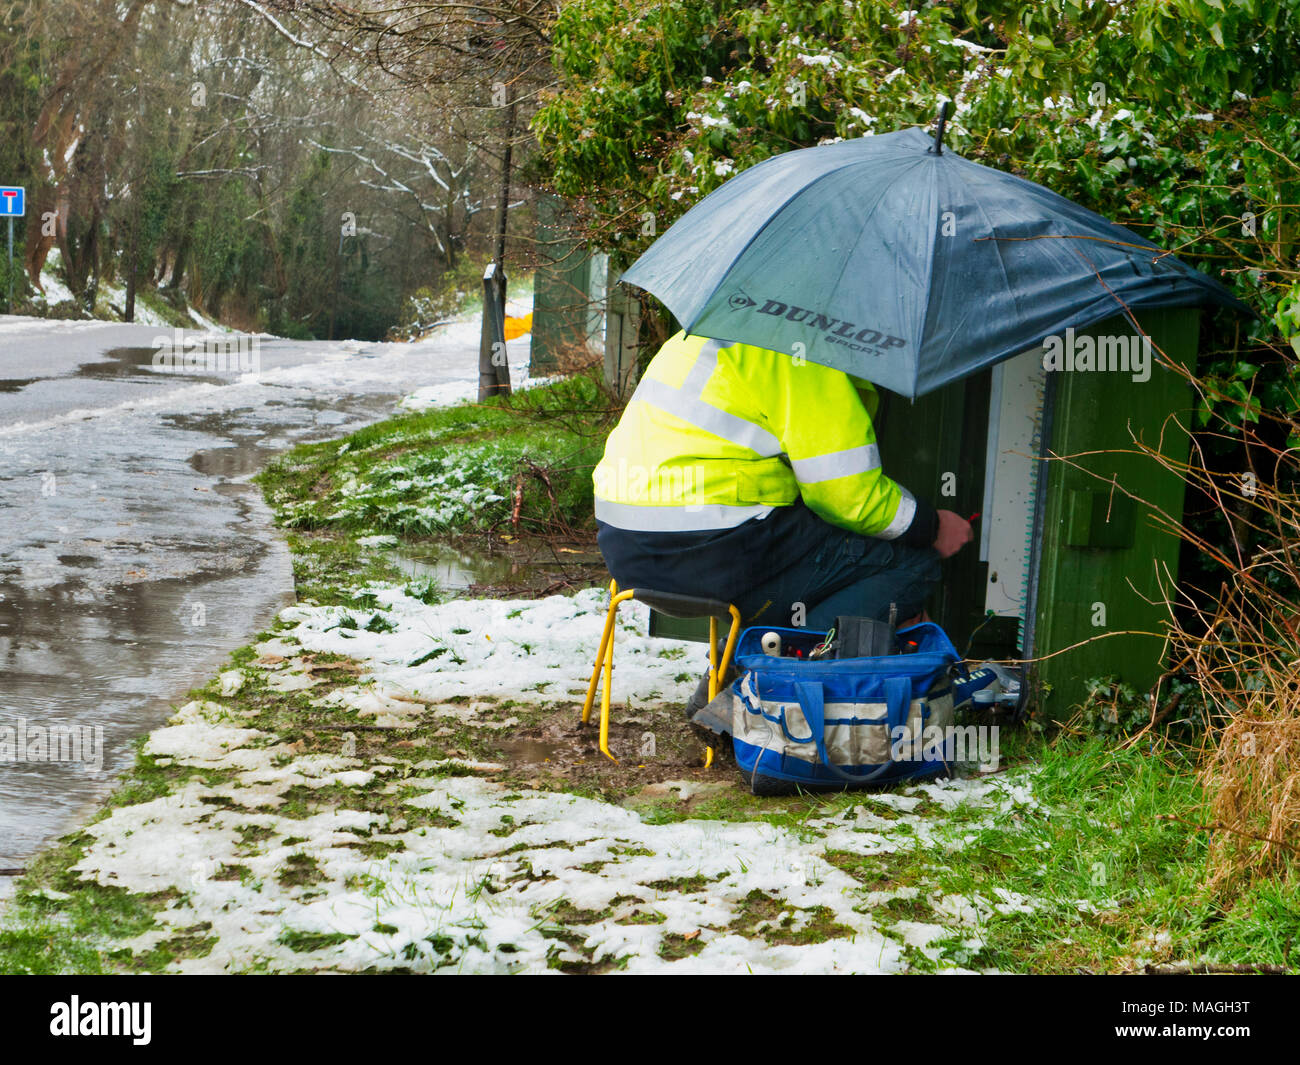 Ashbourne, Derbyshire. 2nd Apr, 2018. UK Weather: BT OpenReach Engineer working in poor conditions after 1' of morning snow quickly melts causing flooding on Easter Bank Holiday Monday in Ashbourne, Derbyshire Credit: Doug Blane/Alamy Live News - Stock Image